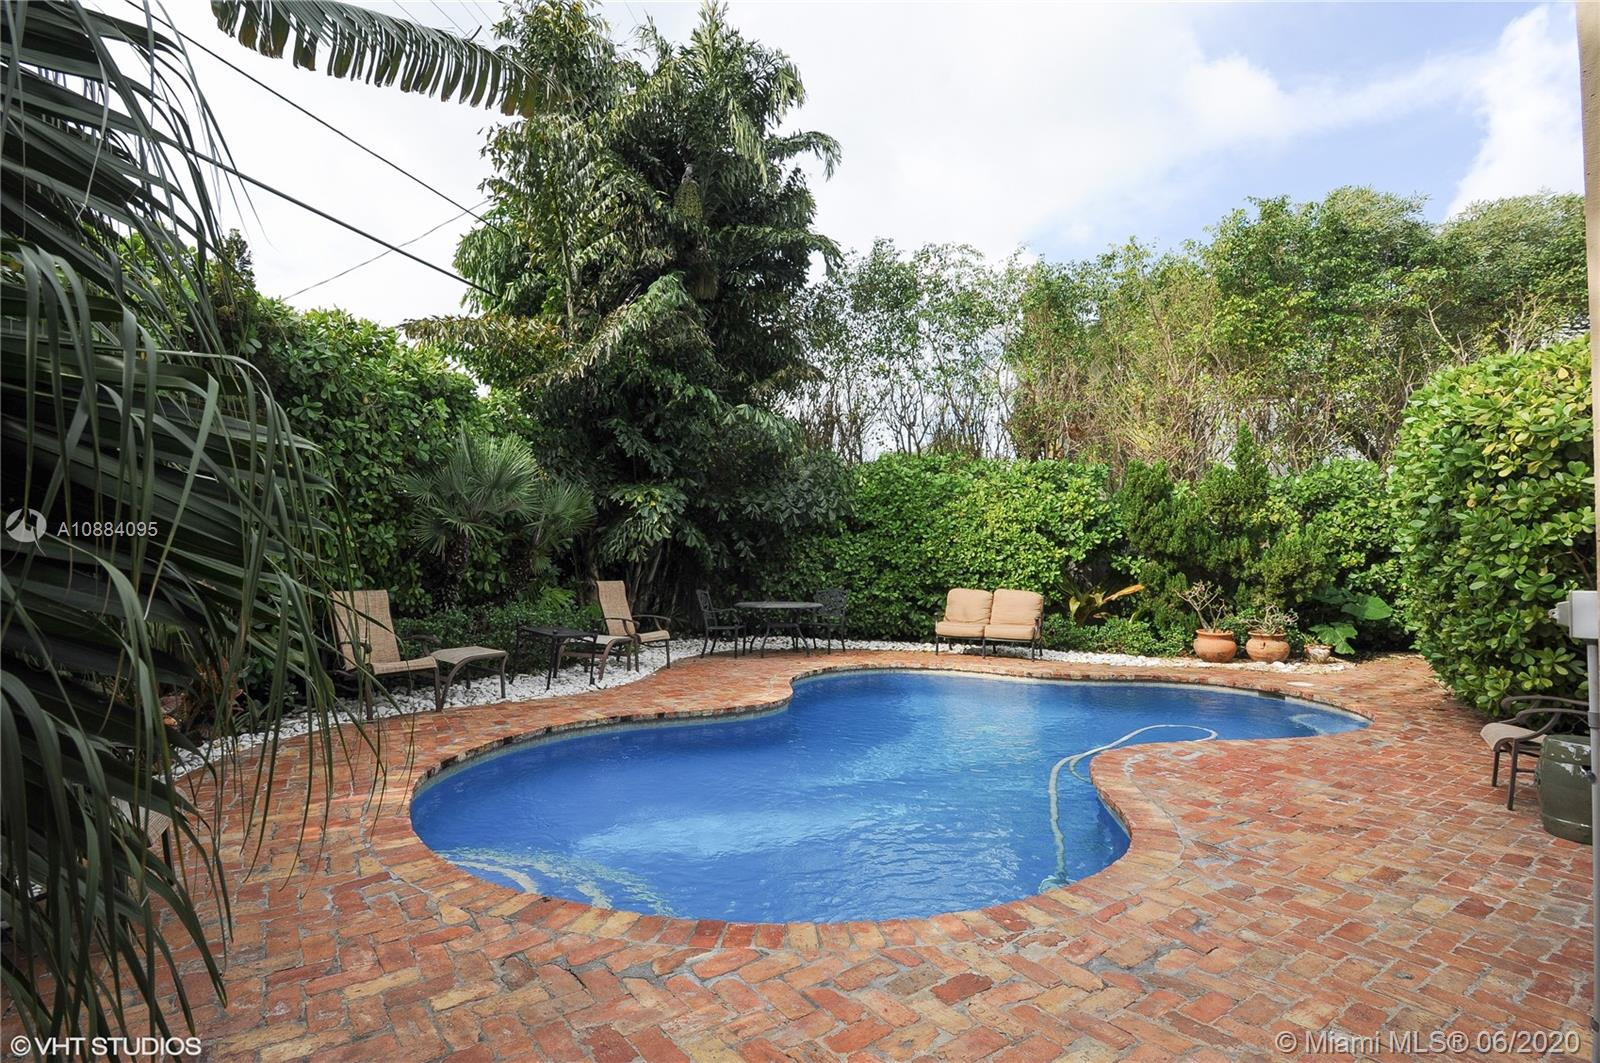 Bay Harbor Islands residence with exquisite architecture and beautiful lines. Make this zen inspired bungalow your own tropical oasis. Relax by the private pool tucked behind lovely landscaping, with heater and chiller for those hot summer days. Or walk to pristine beaches, houses of worship, Bal Harbour Shops and Town of Surfside. This home is unmatched with any for this price.